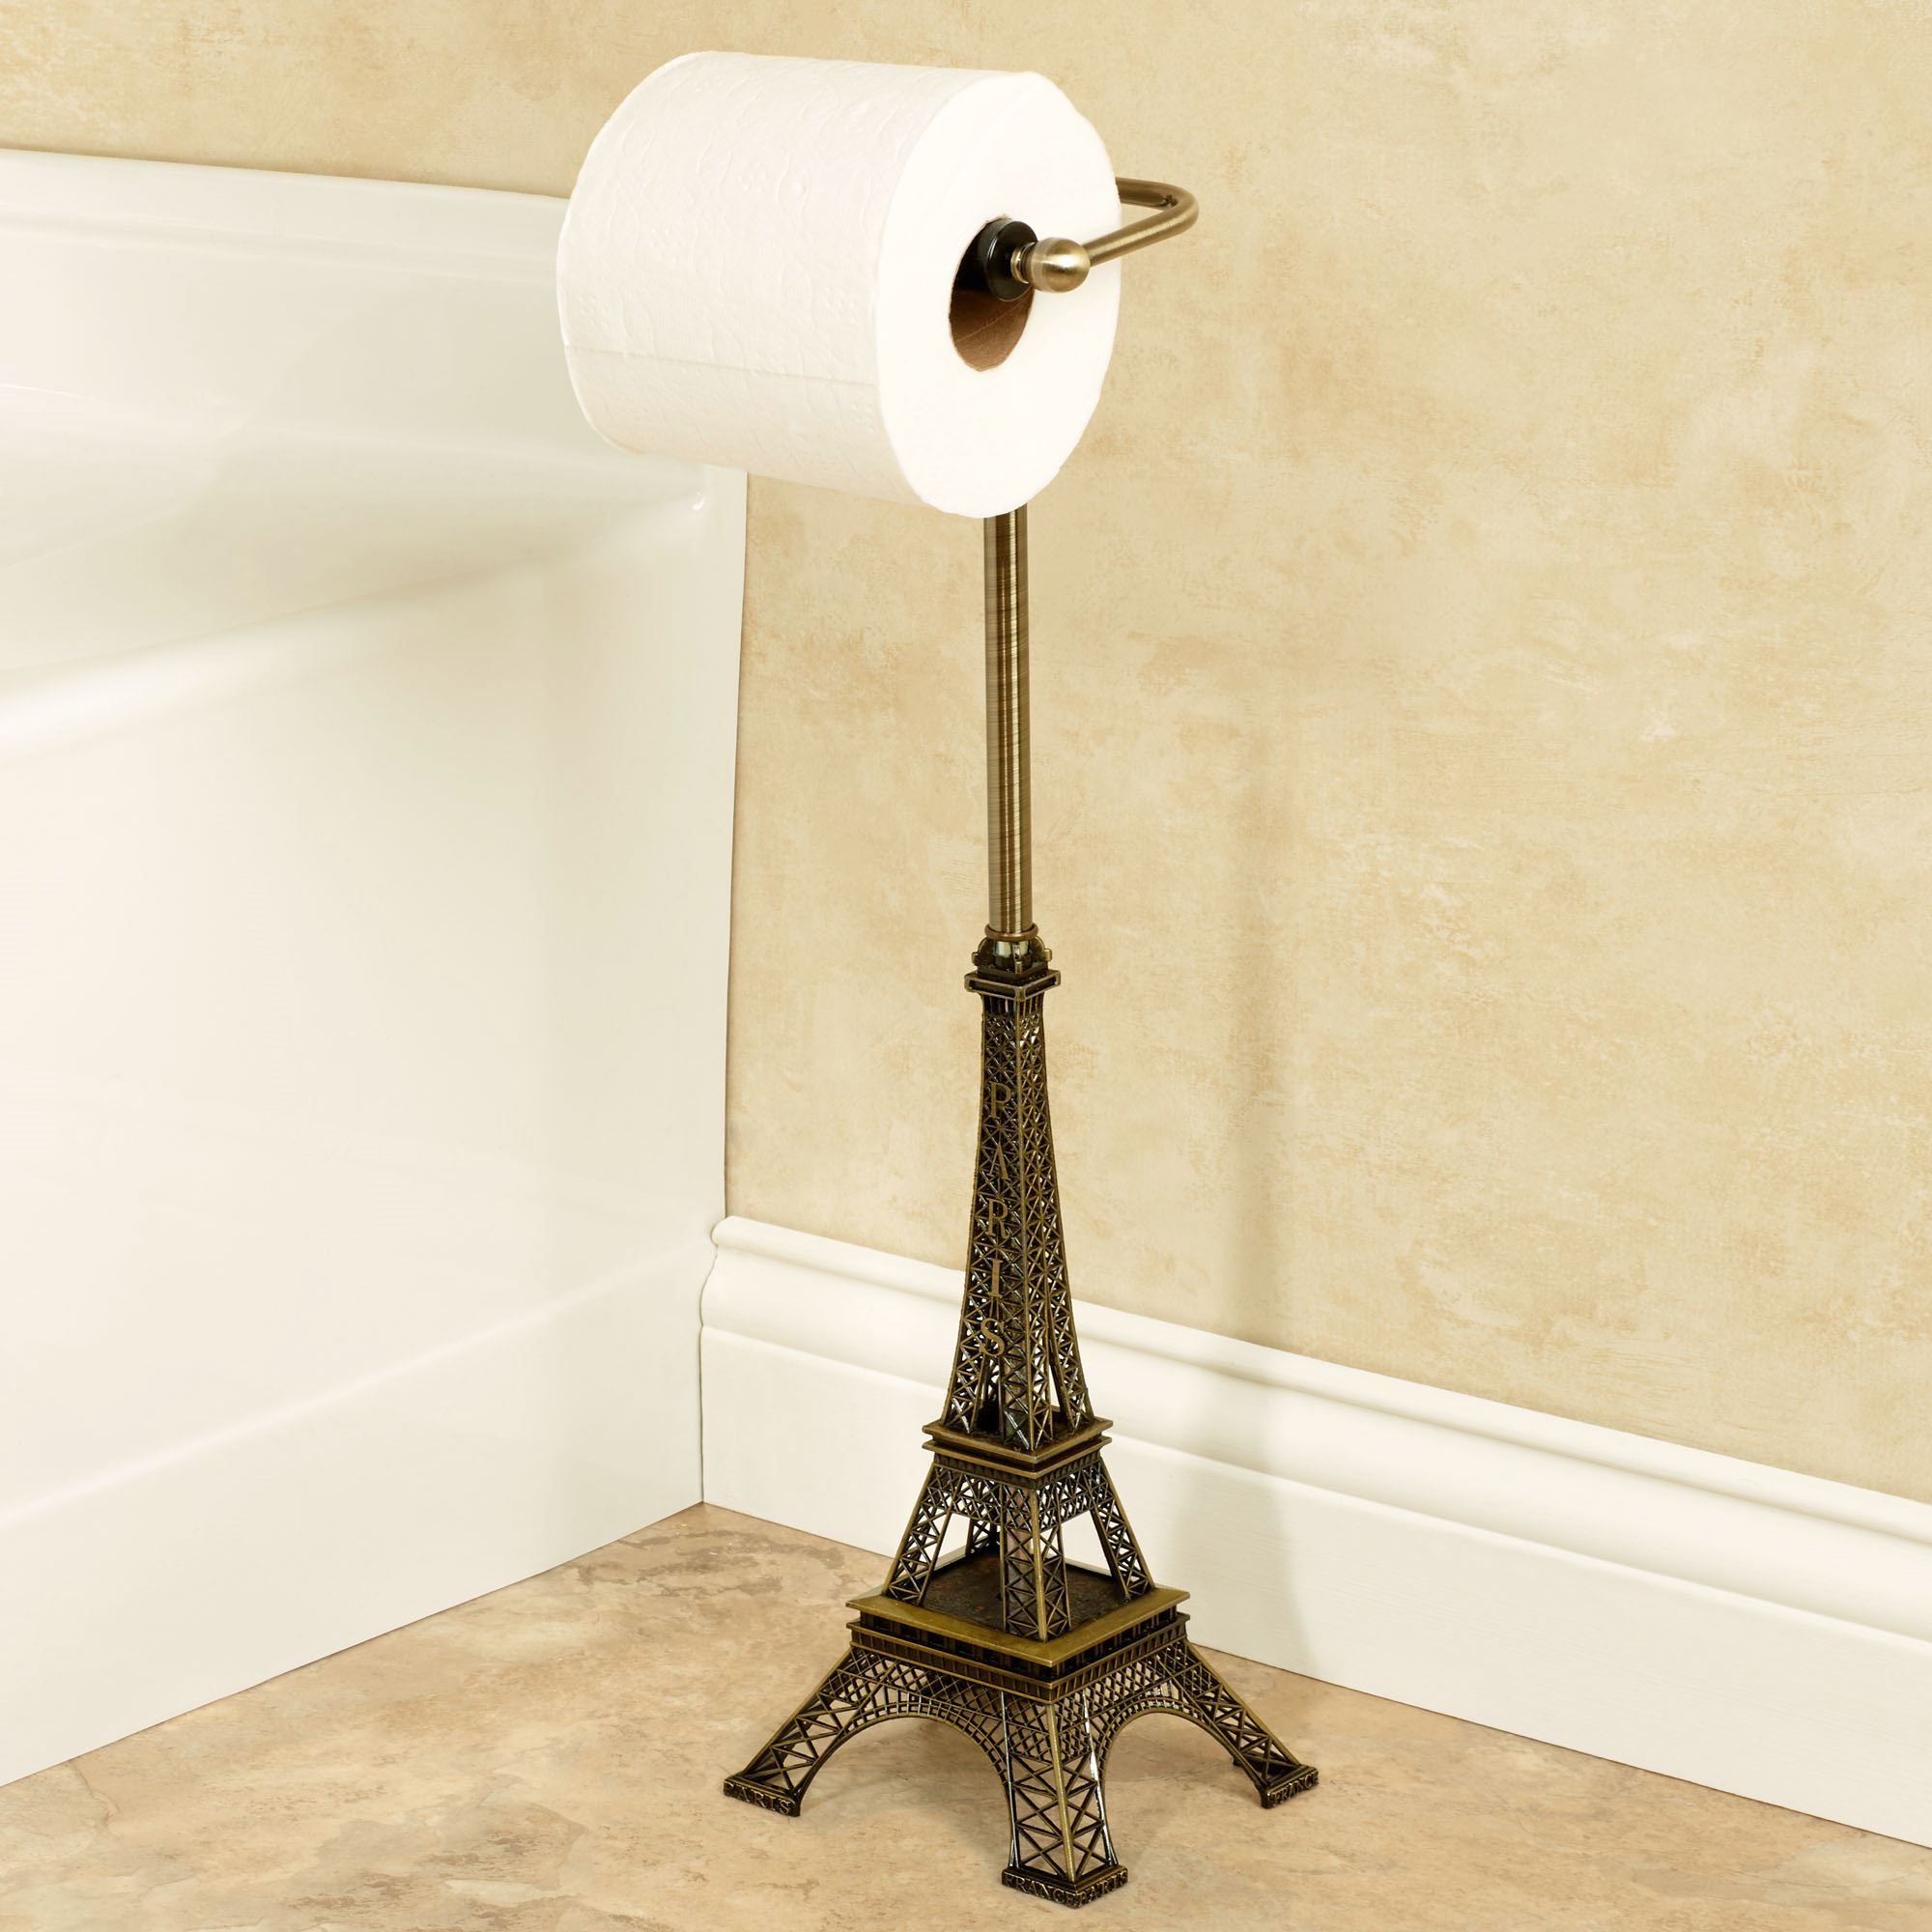 paris themed bathroom set | here are some other cool paris-themed